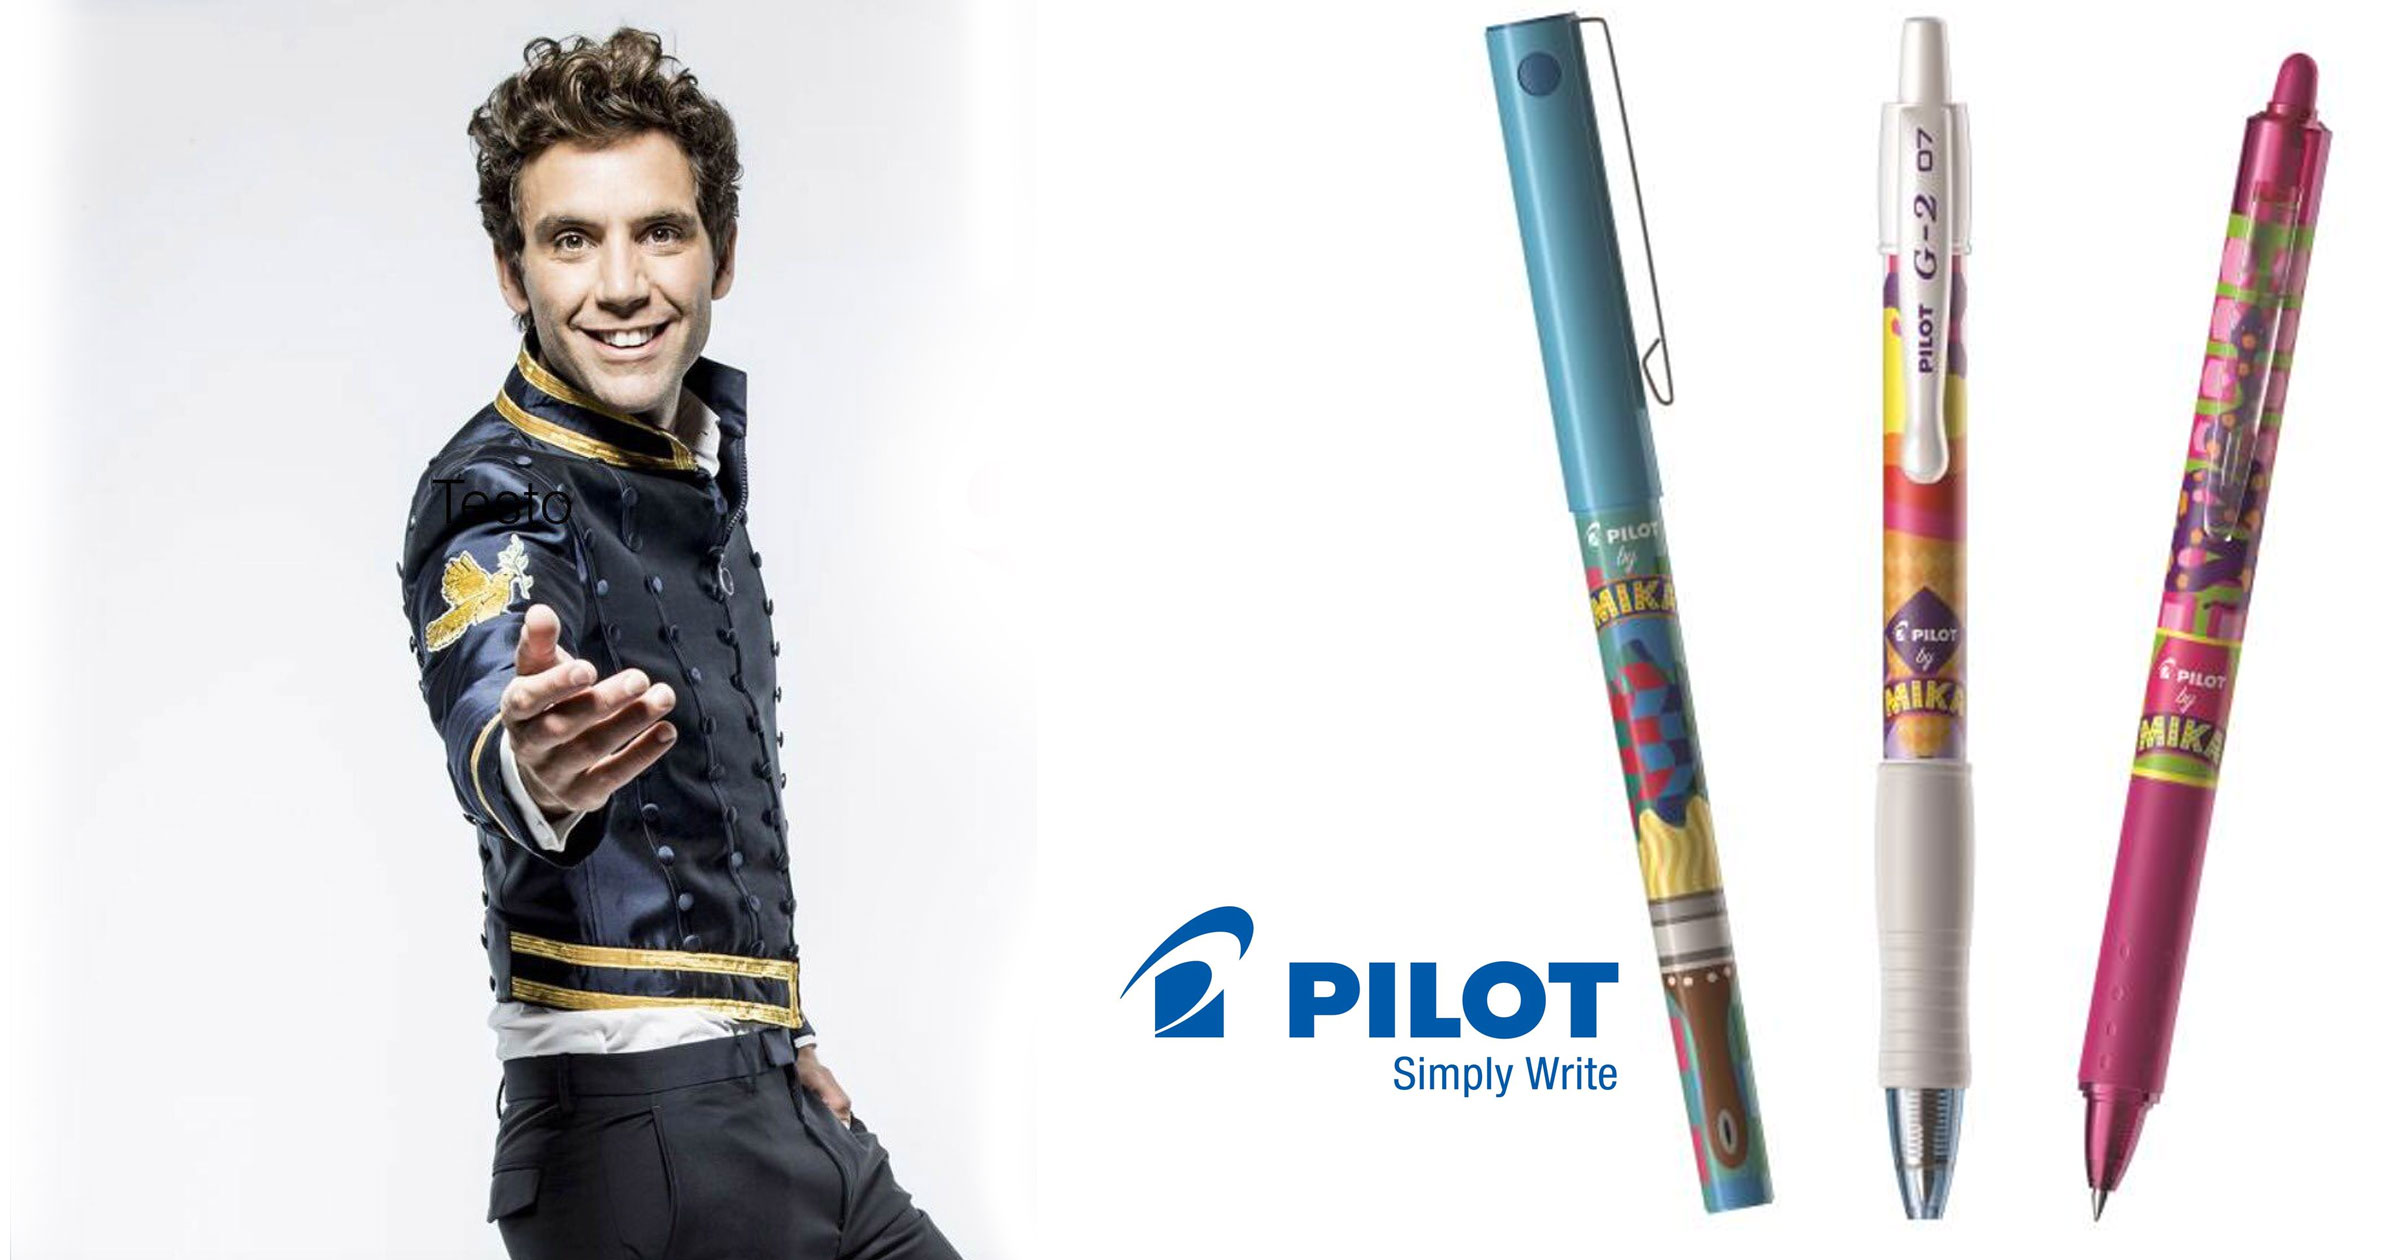 Mika's collaboration with Pilot!